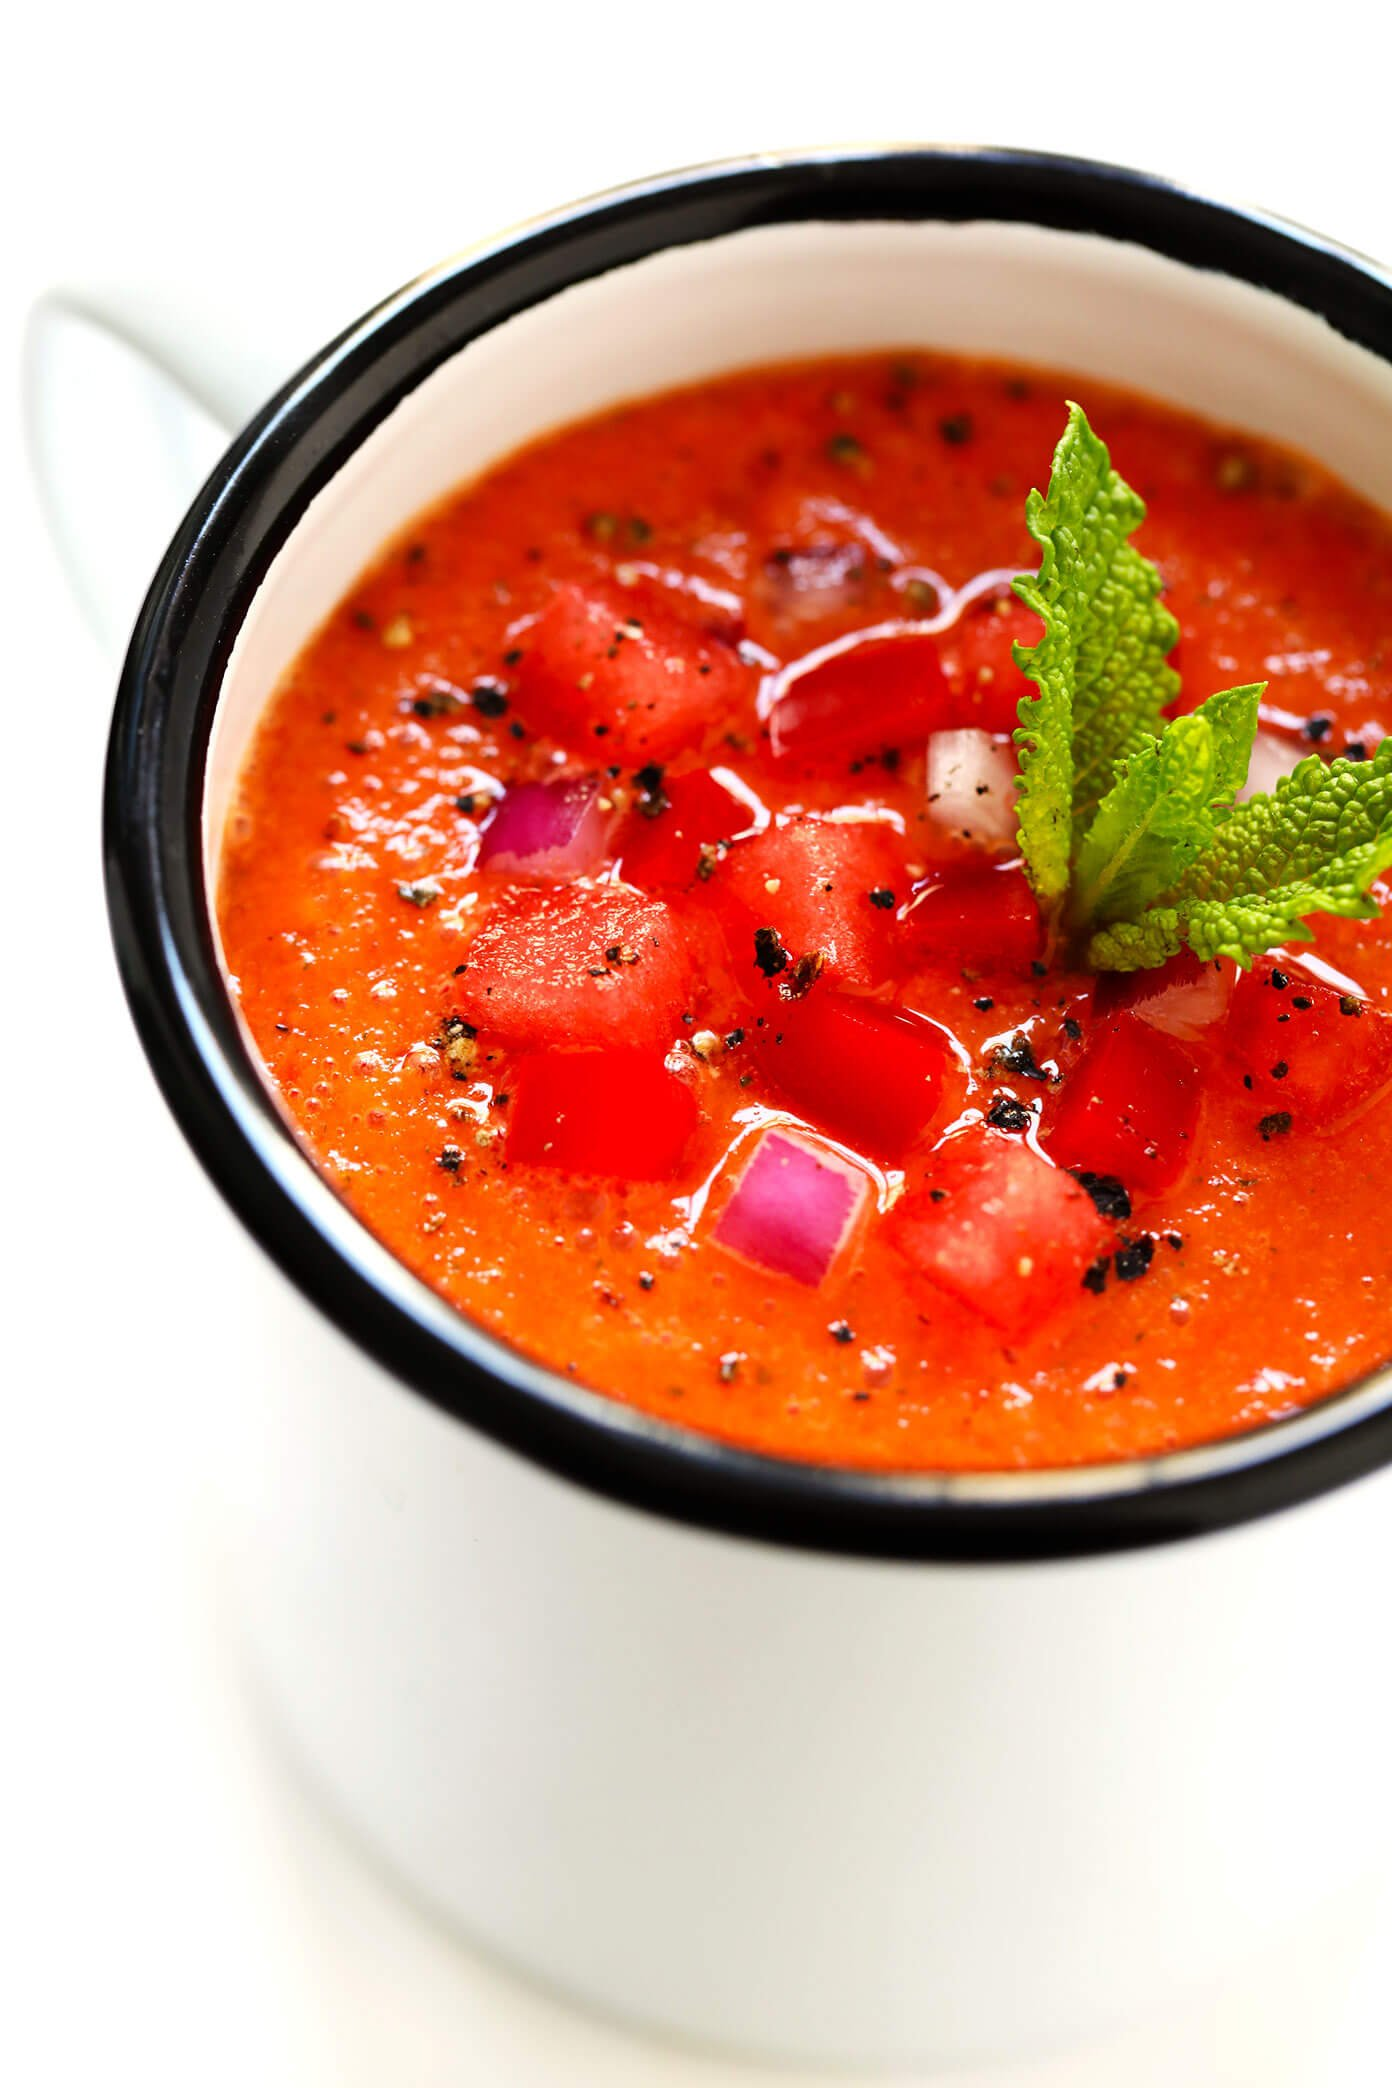 How To Make Gazpacho with Watermelon